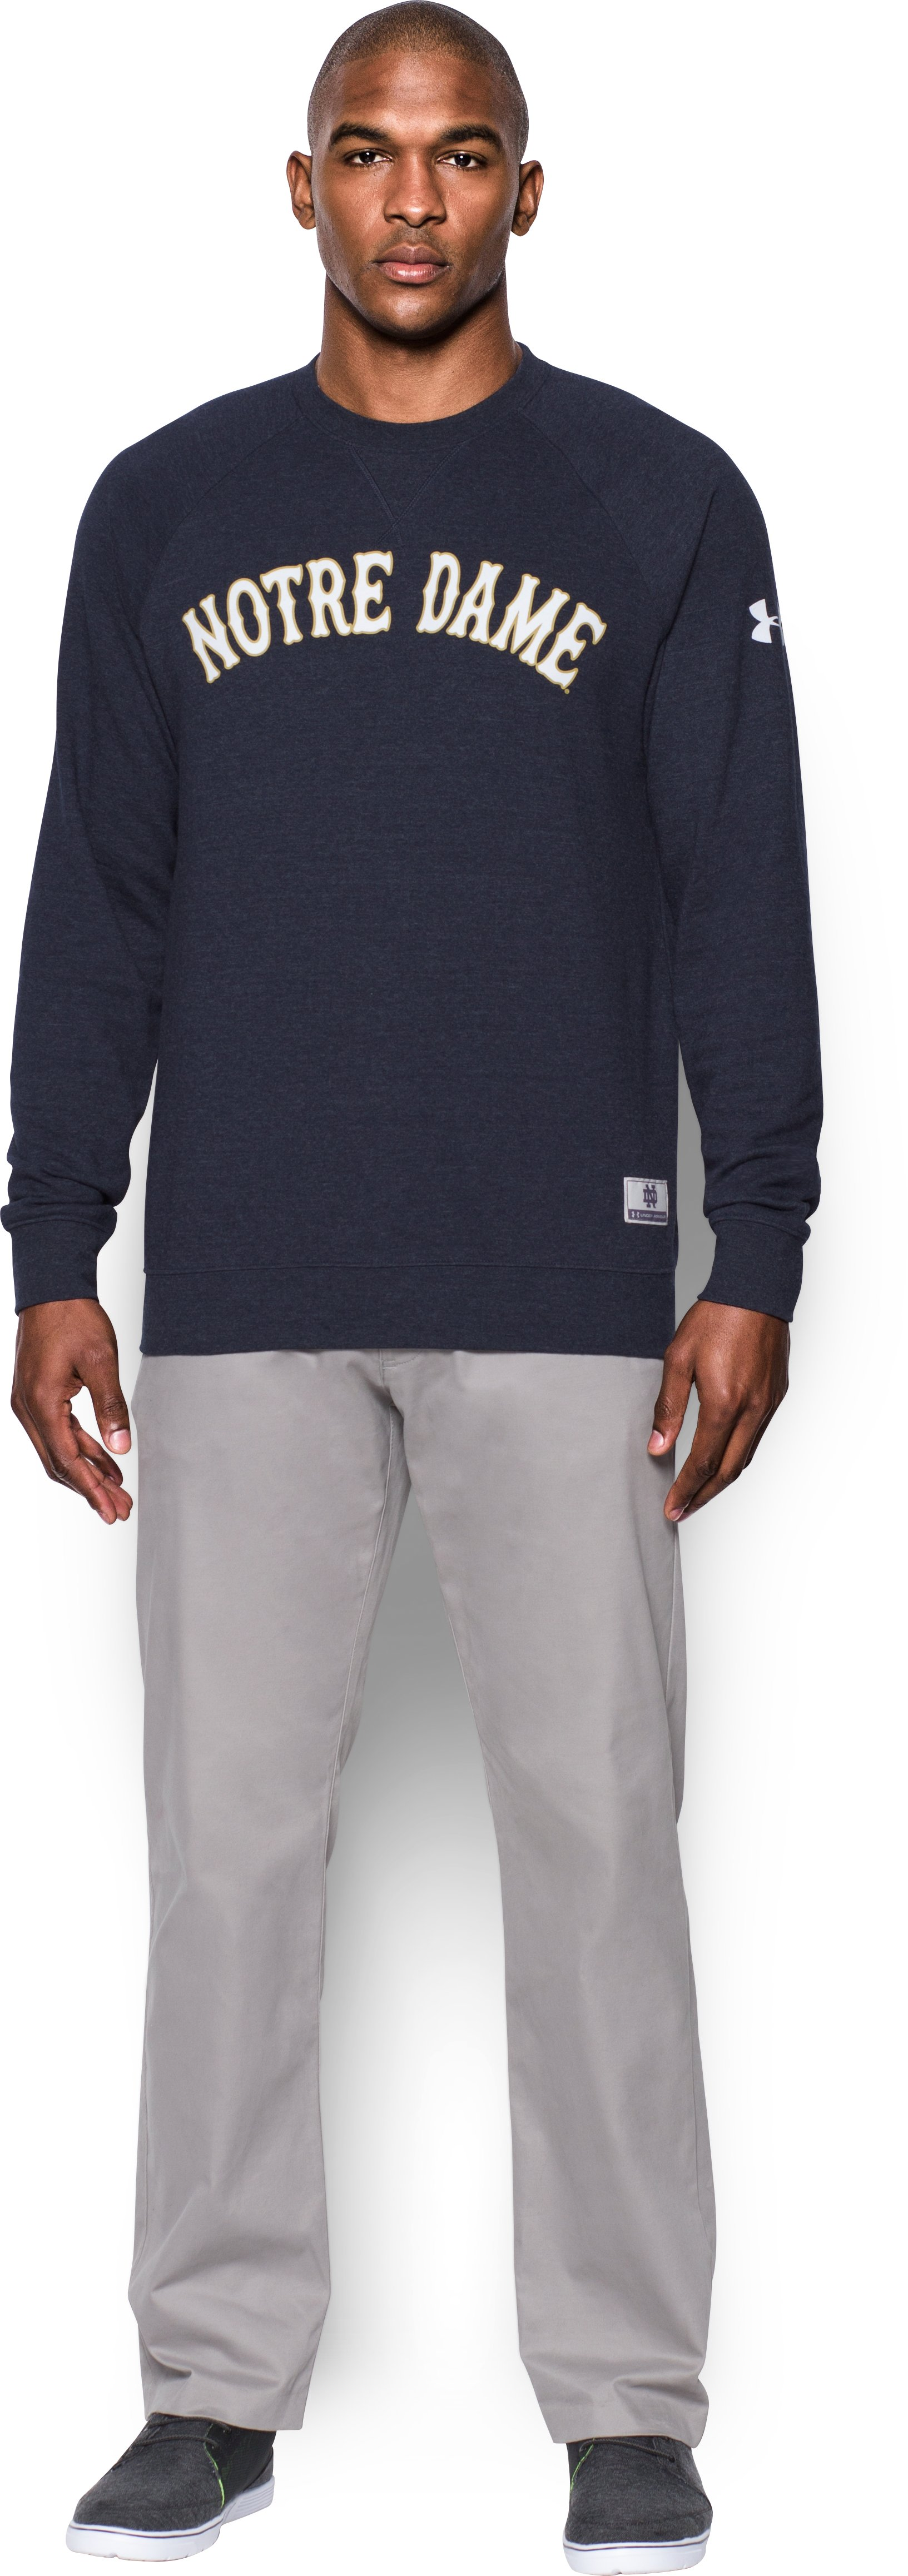 Men's Notre Dame UA Iconic Sweatshirt, Midnight Navy, zoomed image